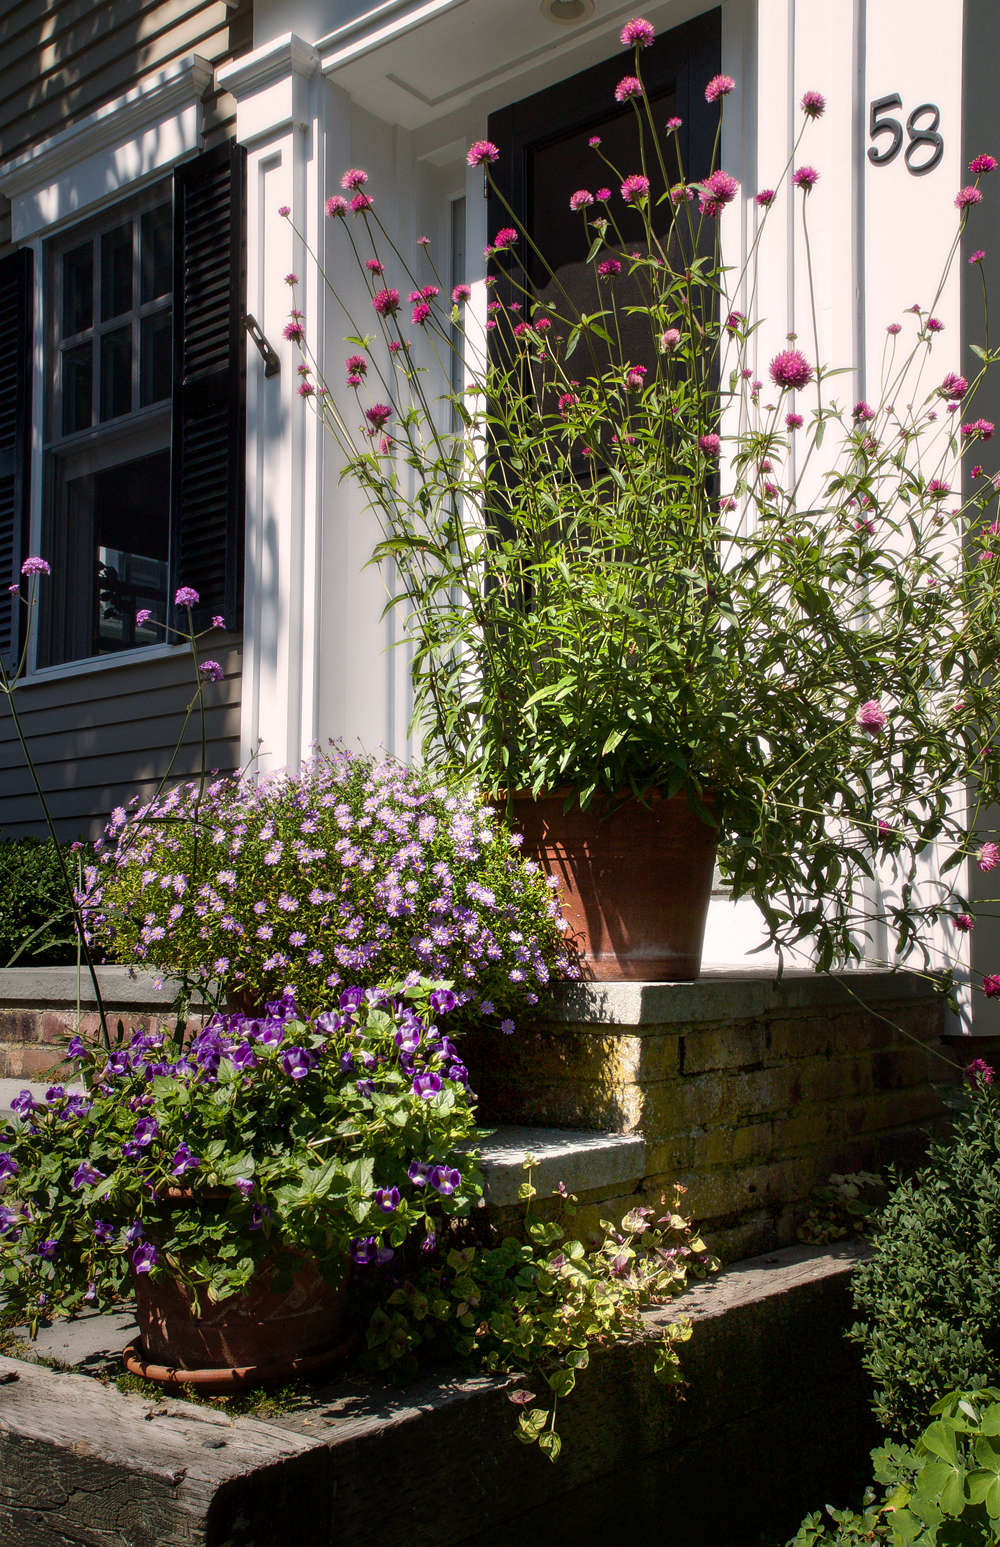 Crowning the front steps of Ian Bruce and Craig Smith&#8\2\17;s house, exuberant Gomphrena provides a bit of Seussian whimsy. Below, Swan River Daisy and Torenia ground the arrangement as they cascade down the steps.